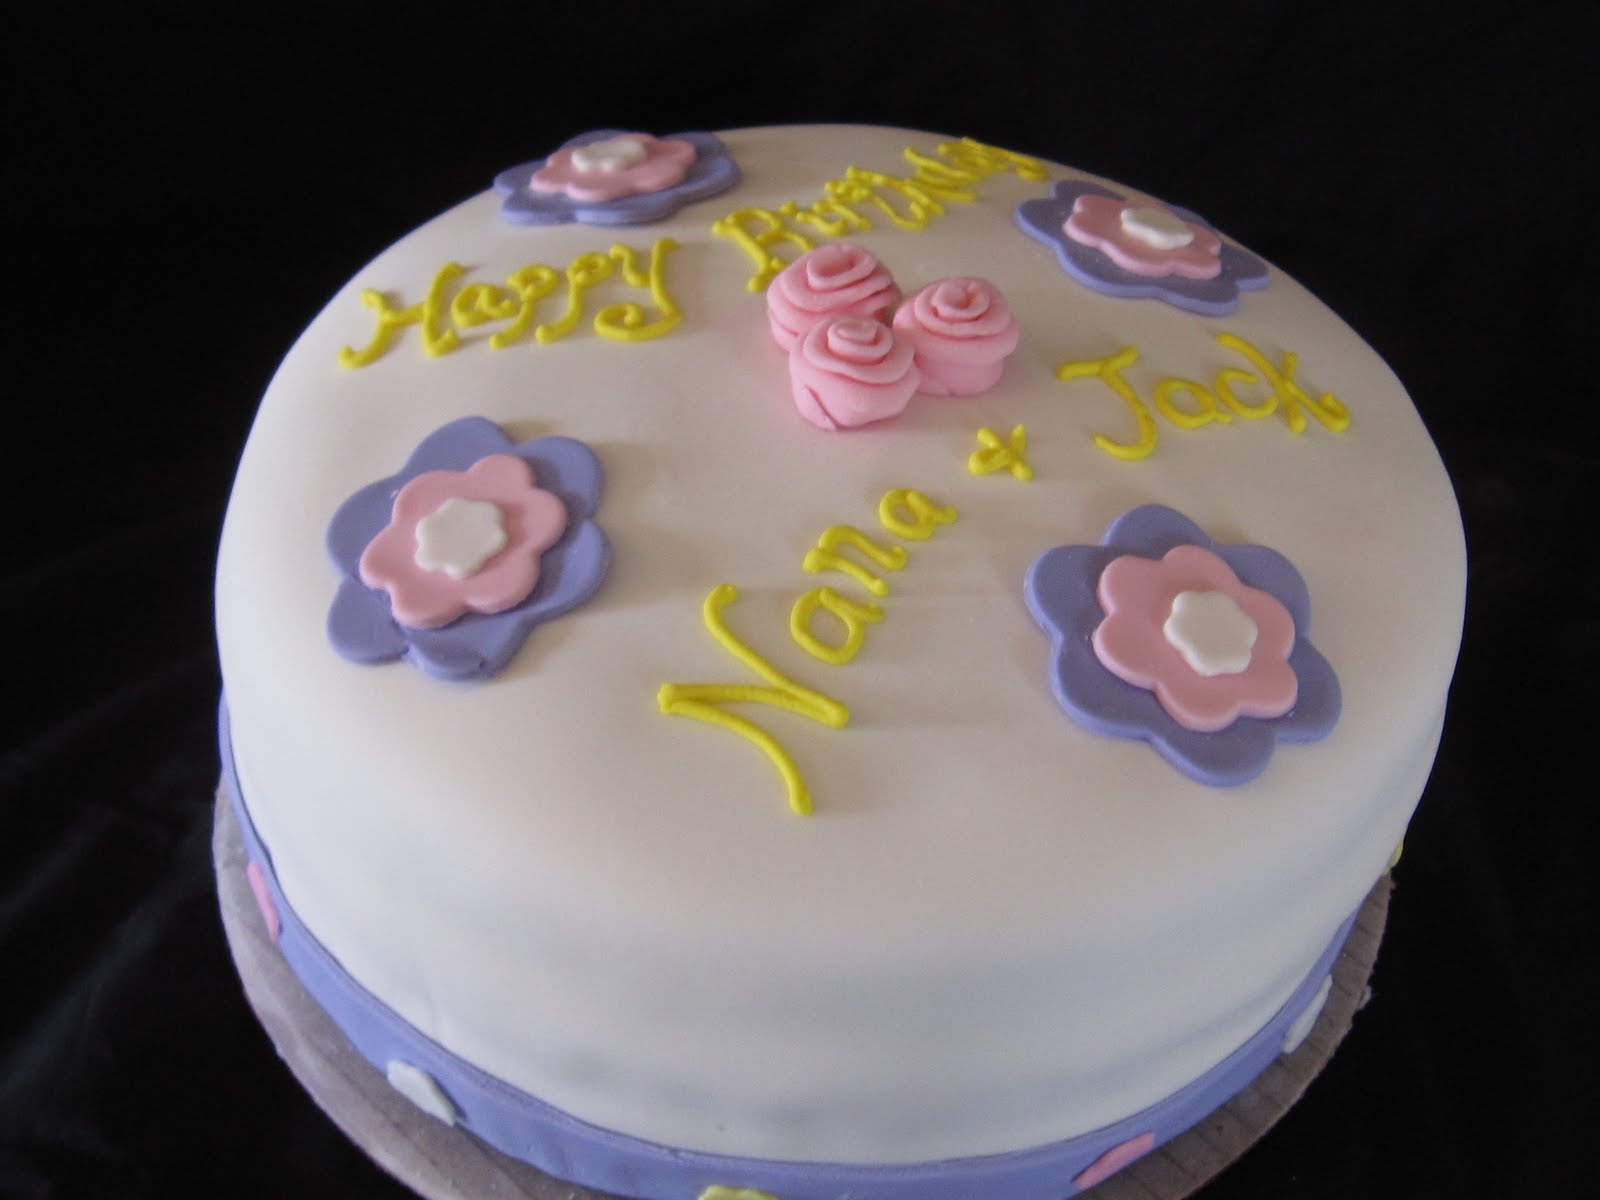 Carrot Cake Decorated with White Fondant, Pink and Purple Flowers, and Yellow Happy Birthday Icing